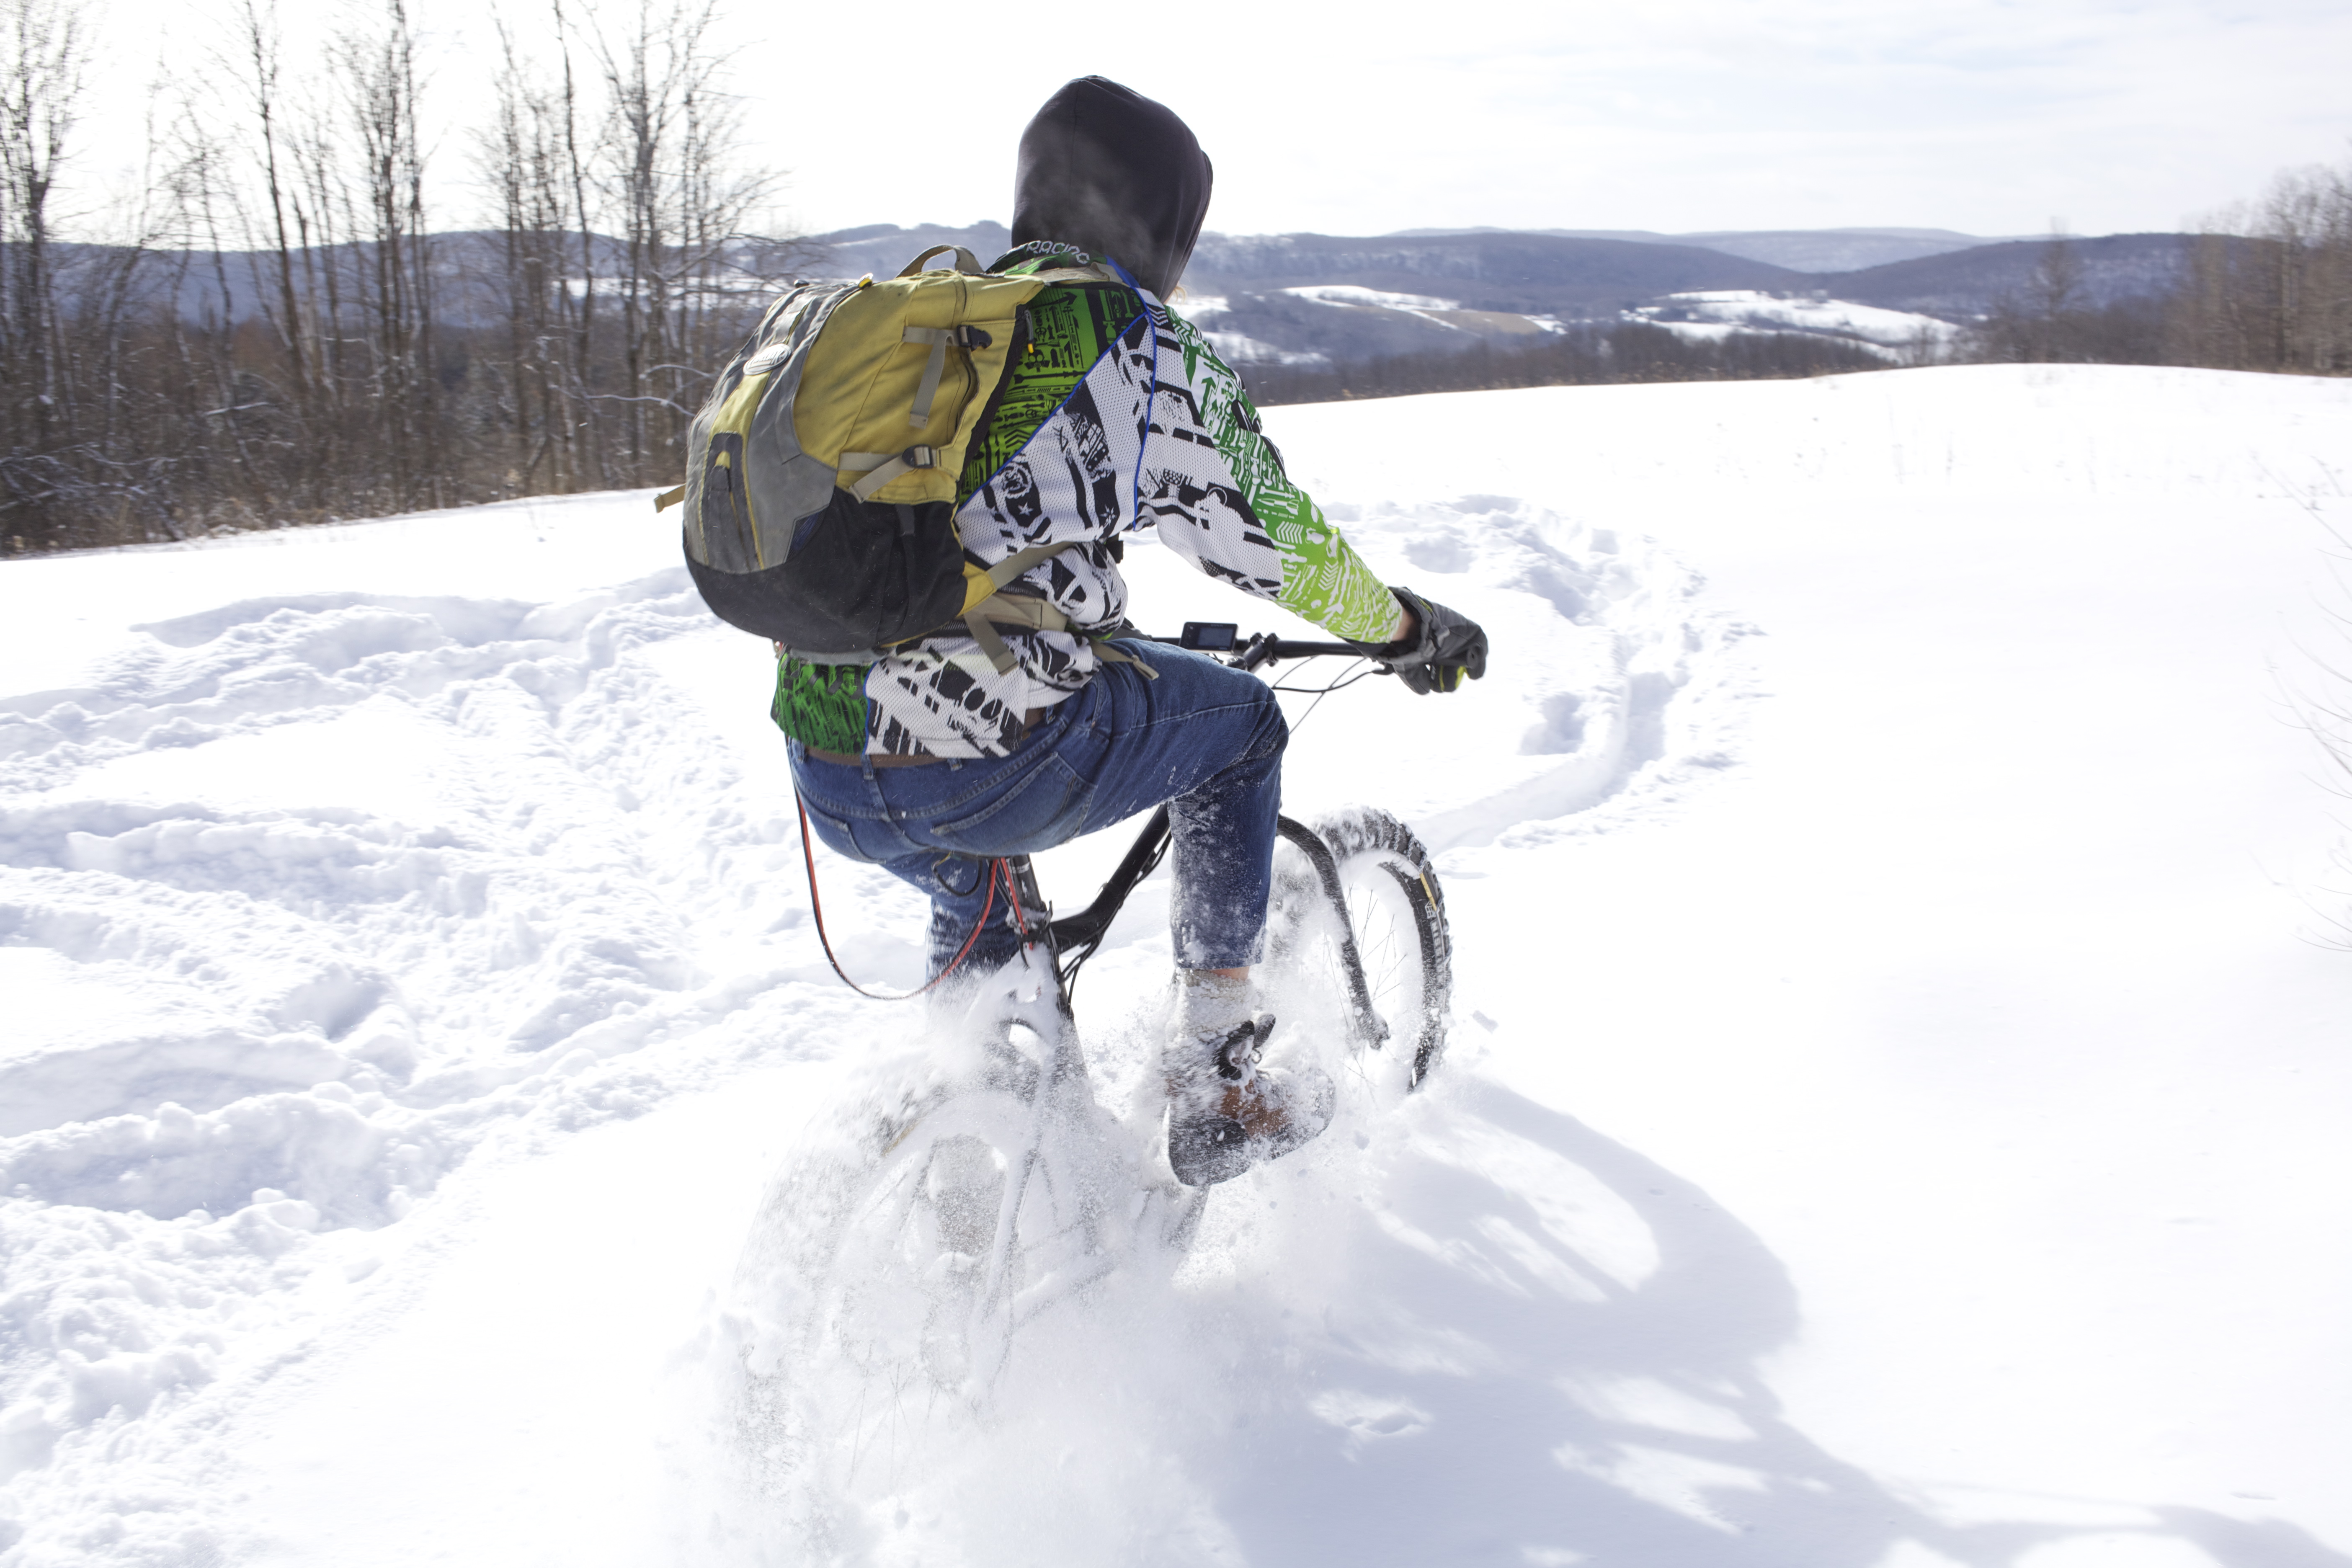 Slipnot Fatbike Tire Chains Totally Shred In Deep Powder